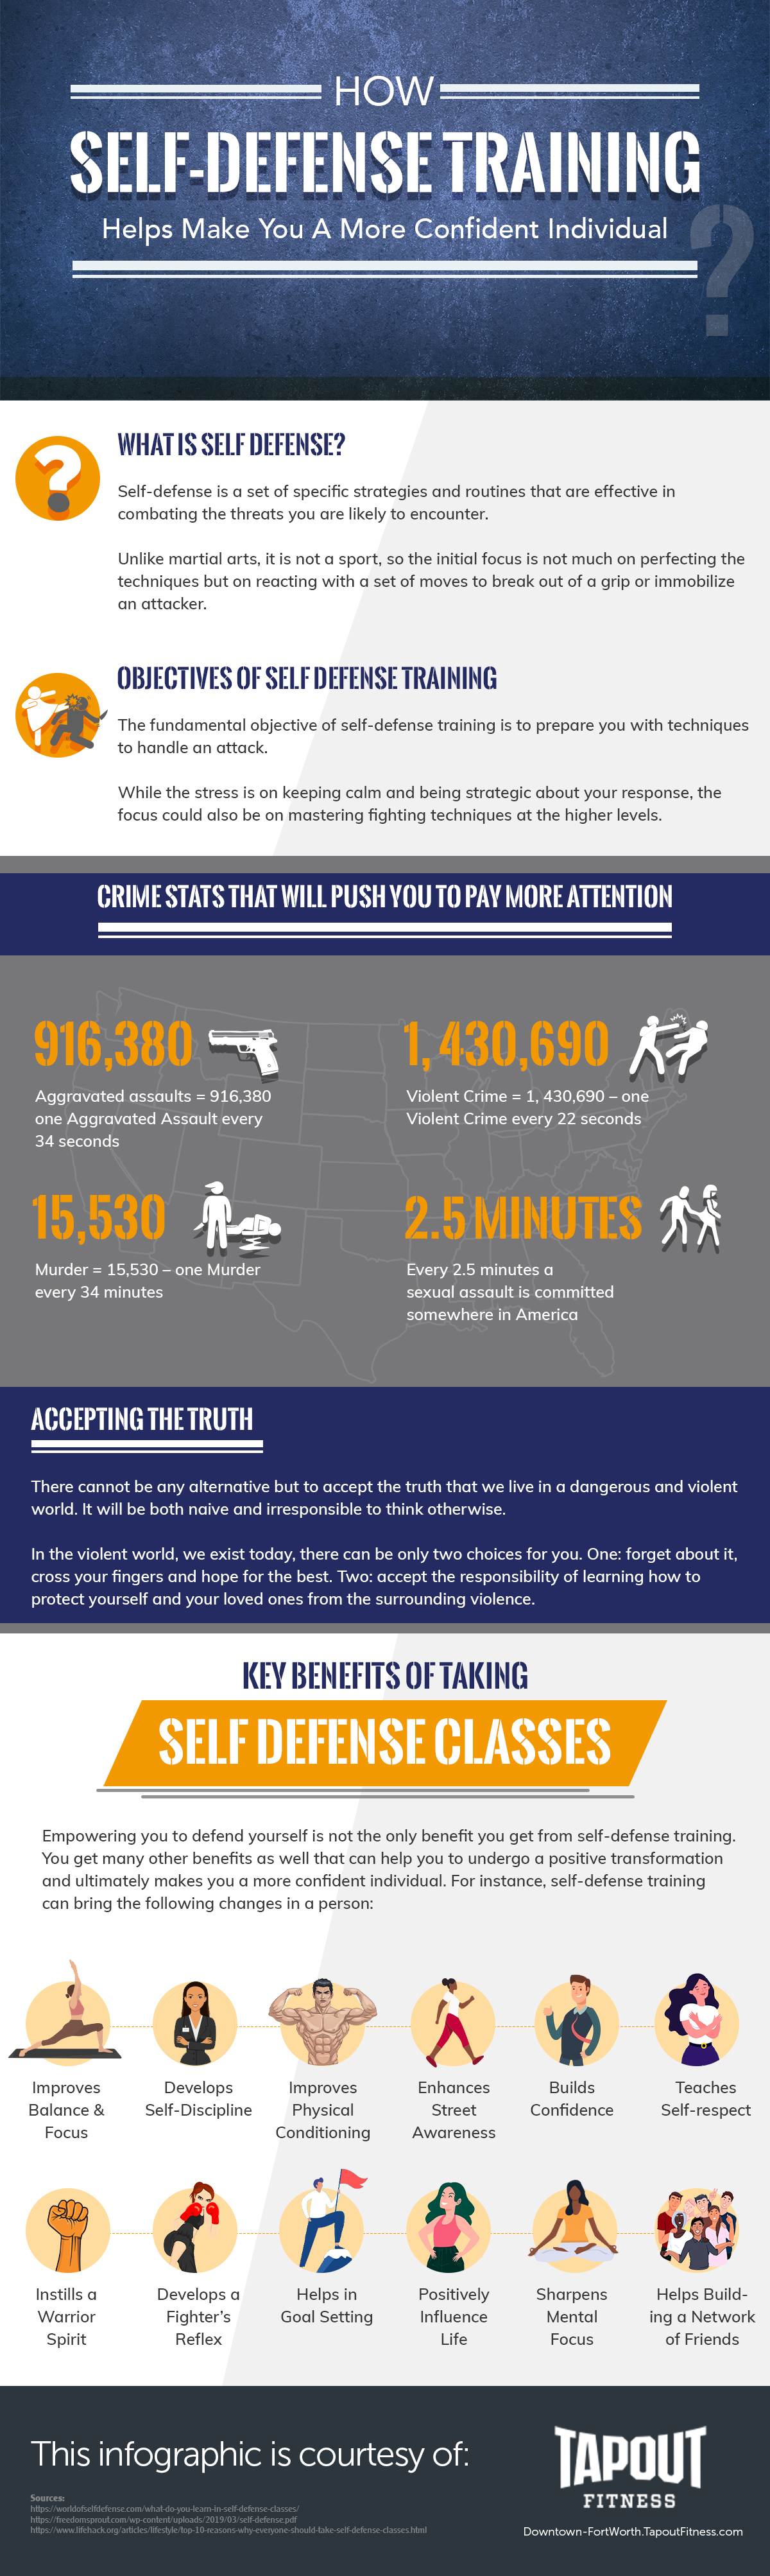 Self-Defense Makes You More Confident-Infographic